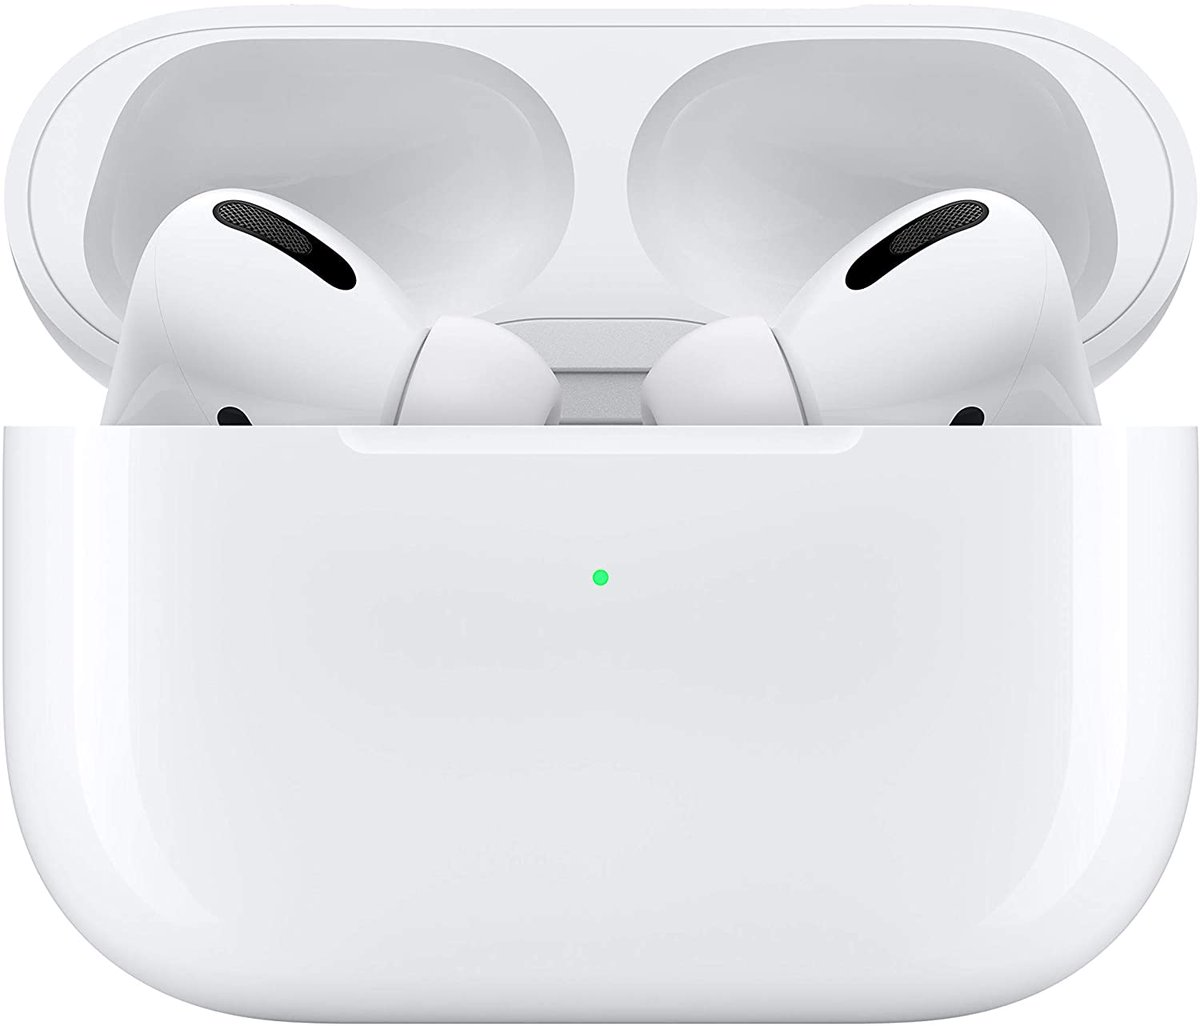 NEW Apple Airpods Pros for $219!!  -Under retail, retail $250!!!!!!  https://t.co/CWCWdBvvNa https://t.co/3Vv3ODy0wA